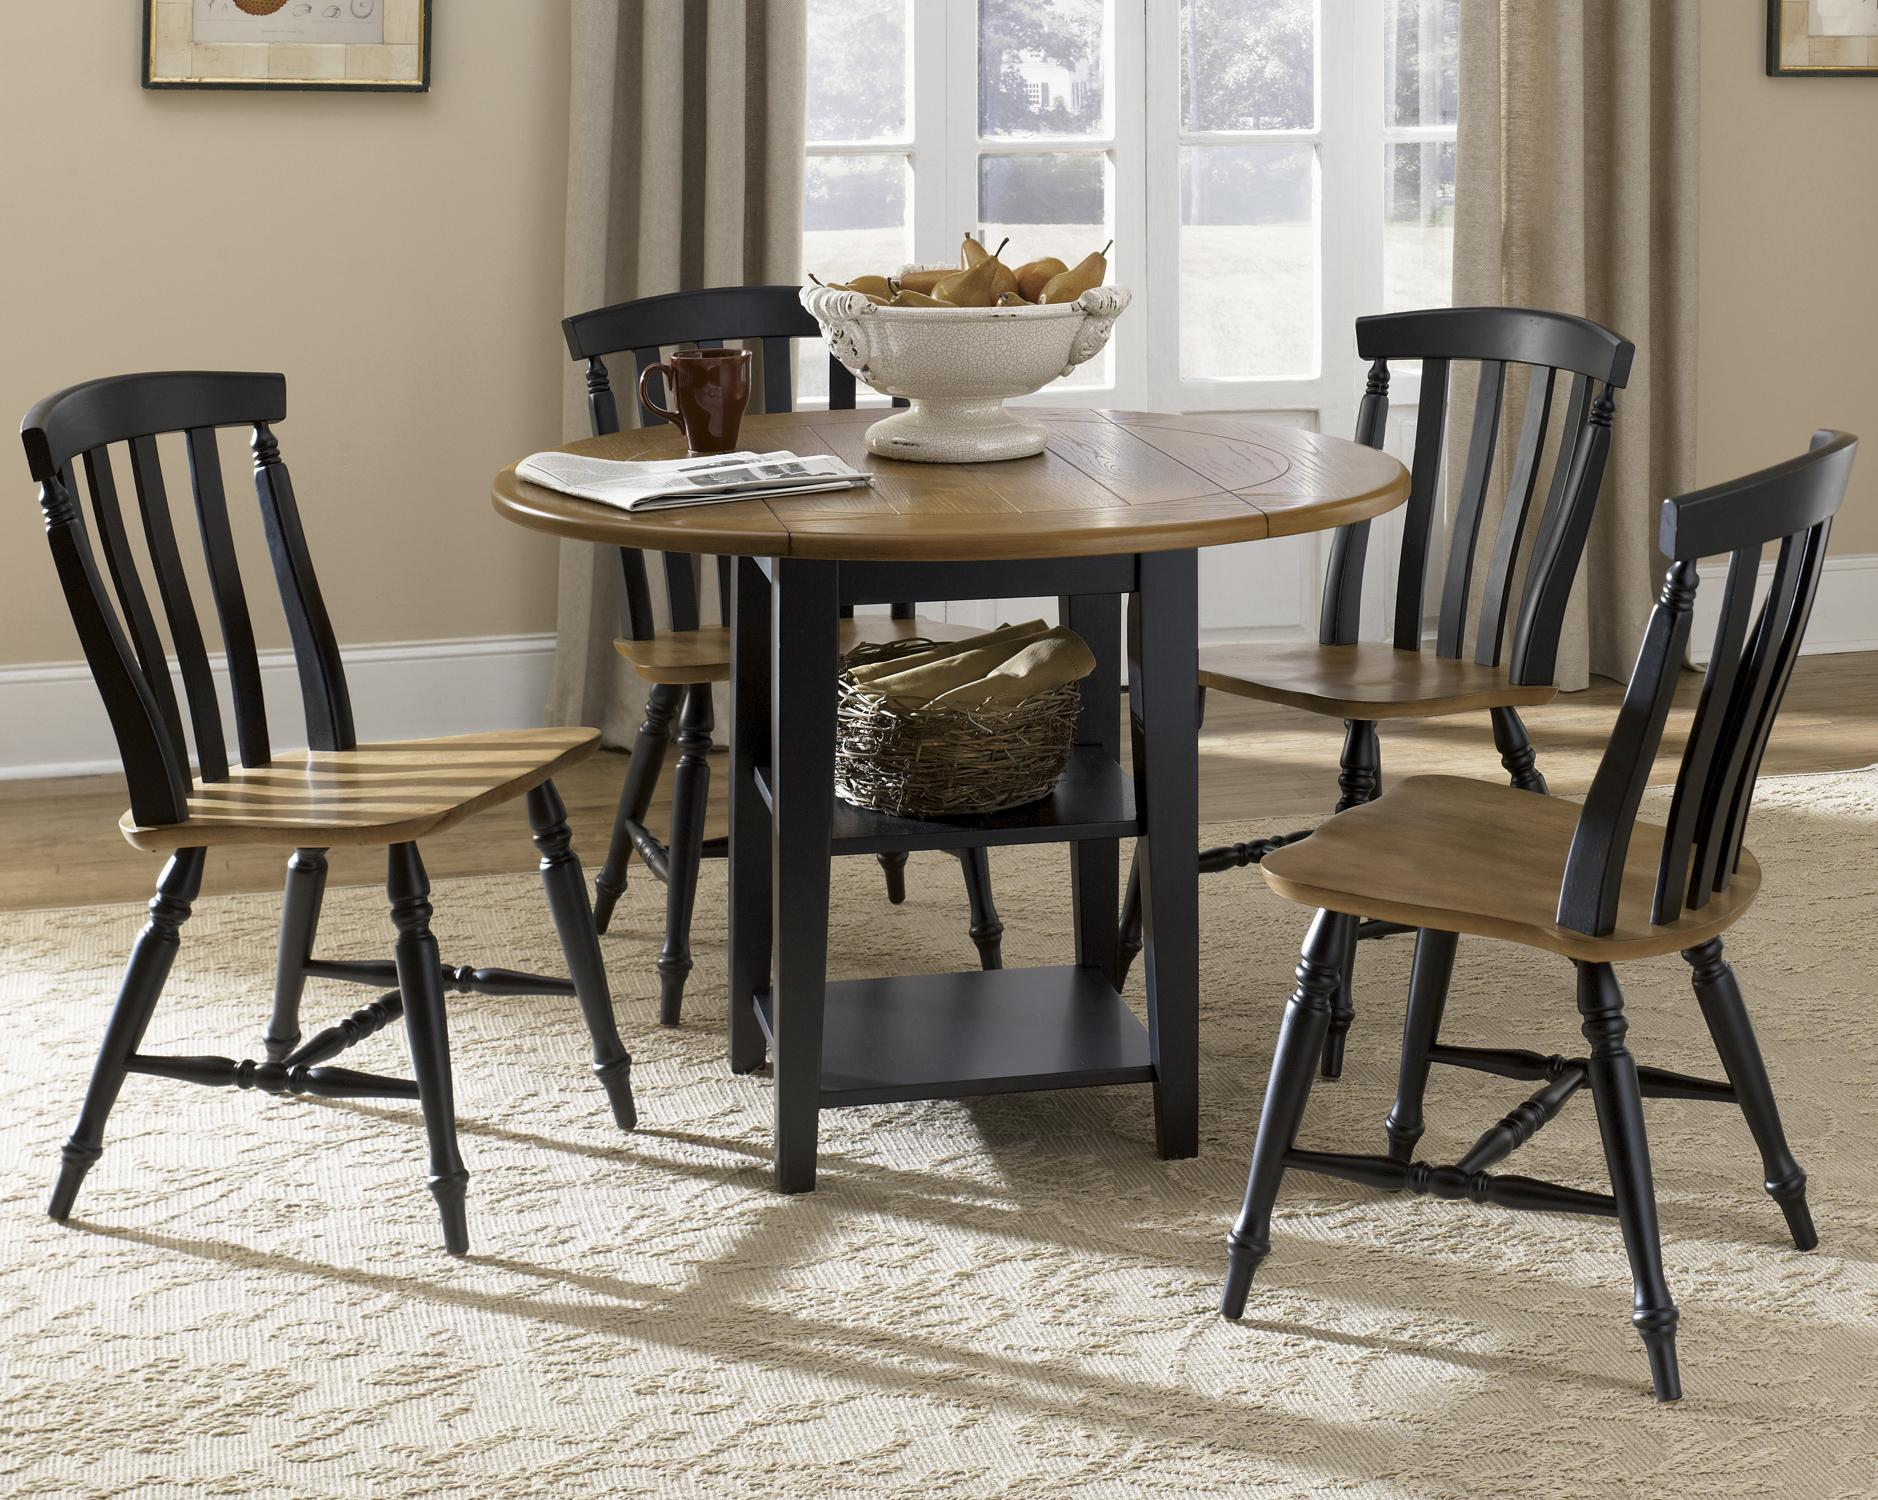 al s chairs and tables baby trend high chair target liberty furniture fresco ii five piece drop leaf table